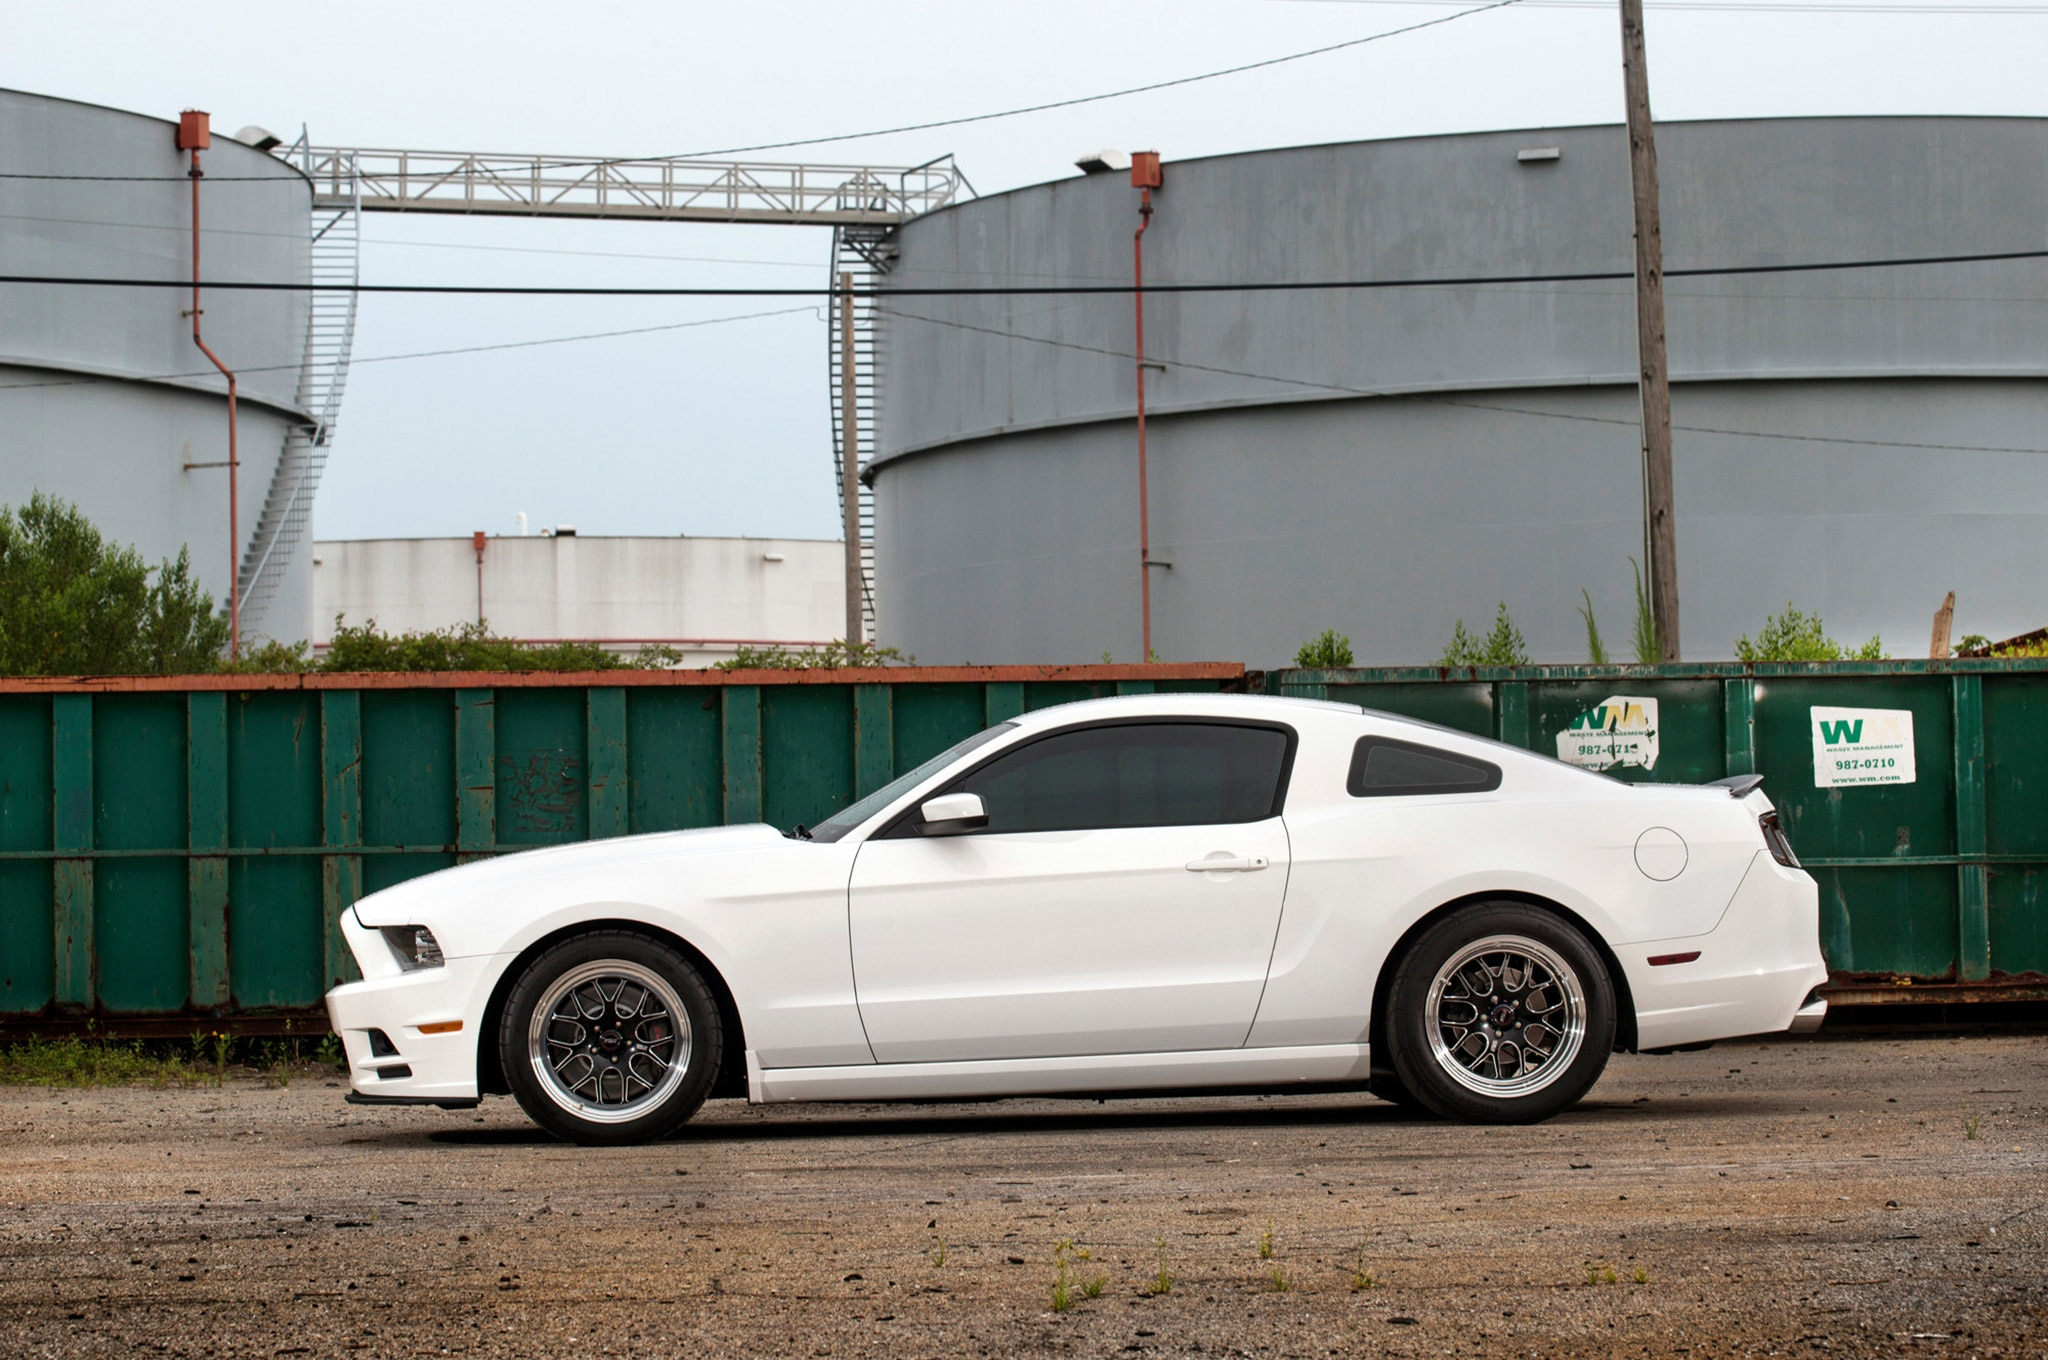 Big, Bad Boss: The 2013 Ford Mustang Boss 302 with 1,145 HP